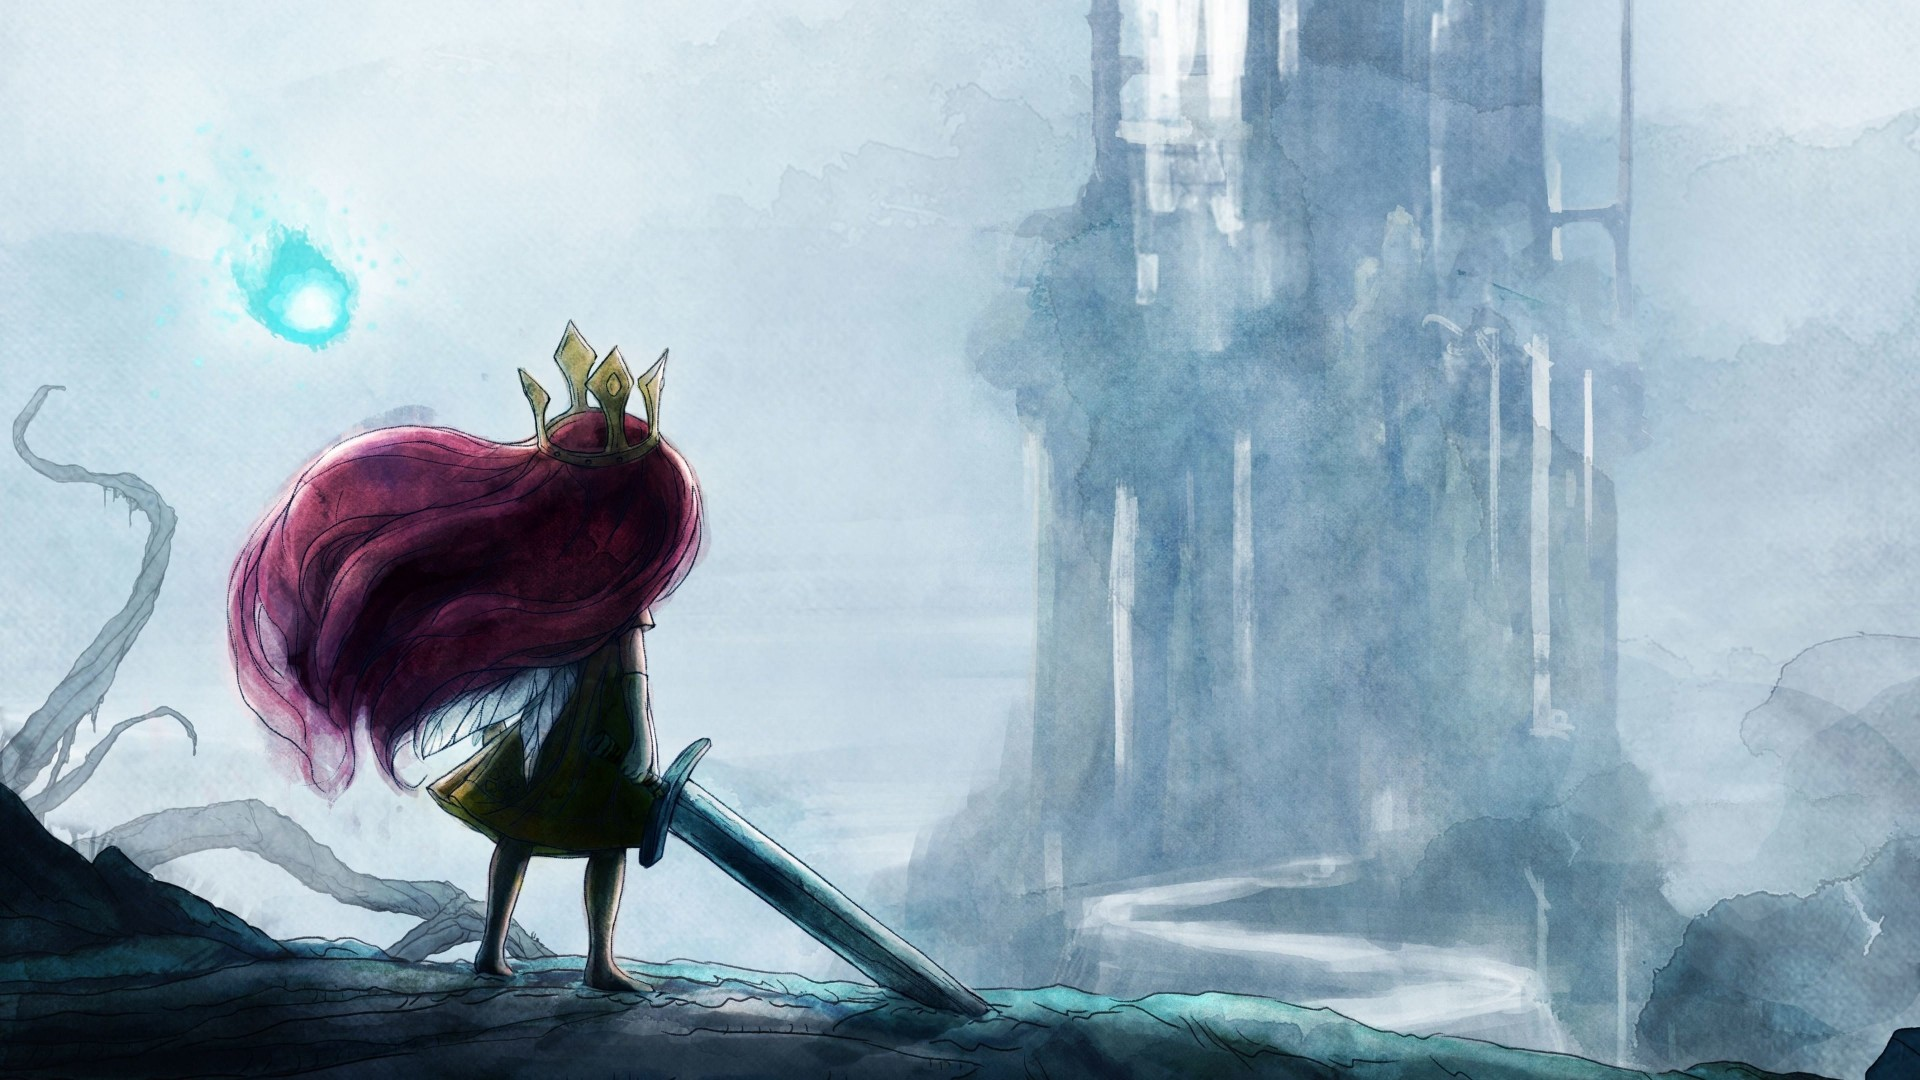 Child Of Light Wallpaper for Desktop 1920x1080